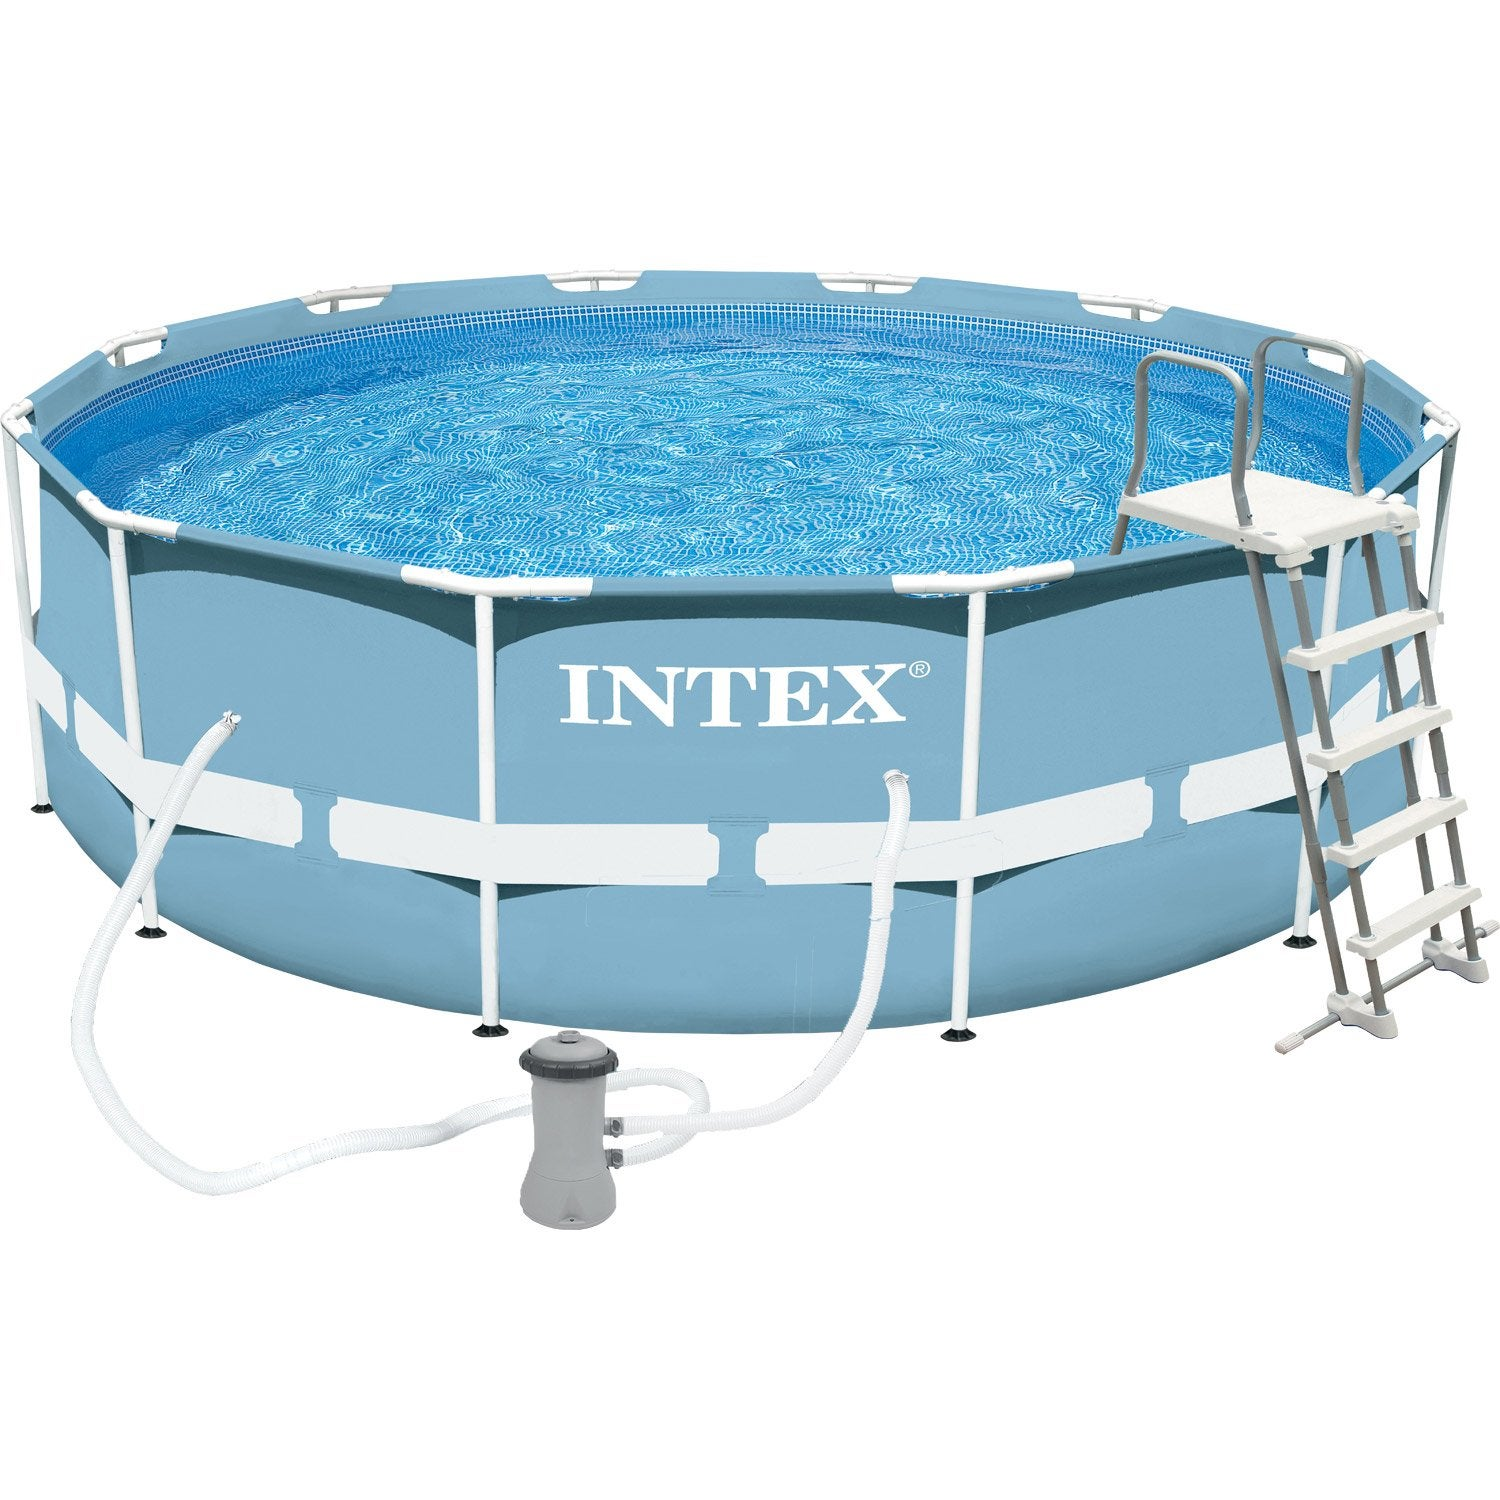 Piscine hors sol autoportante tubulaire prism frame intex for Hors sol tubulaire